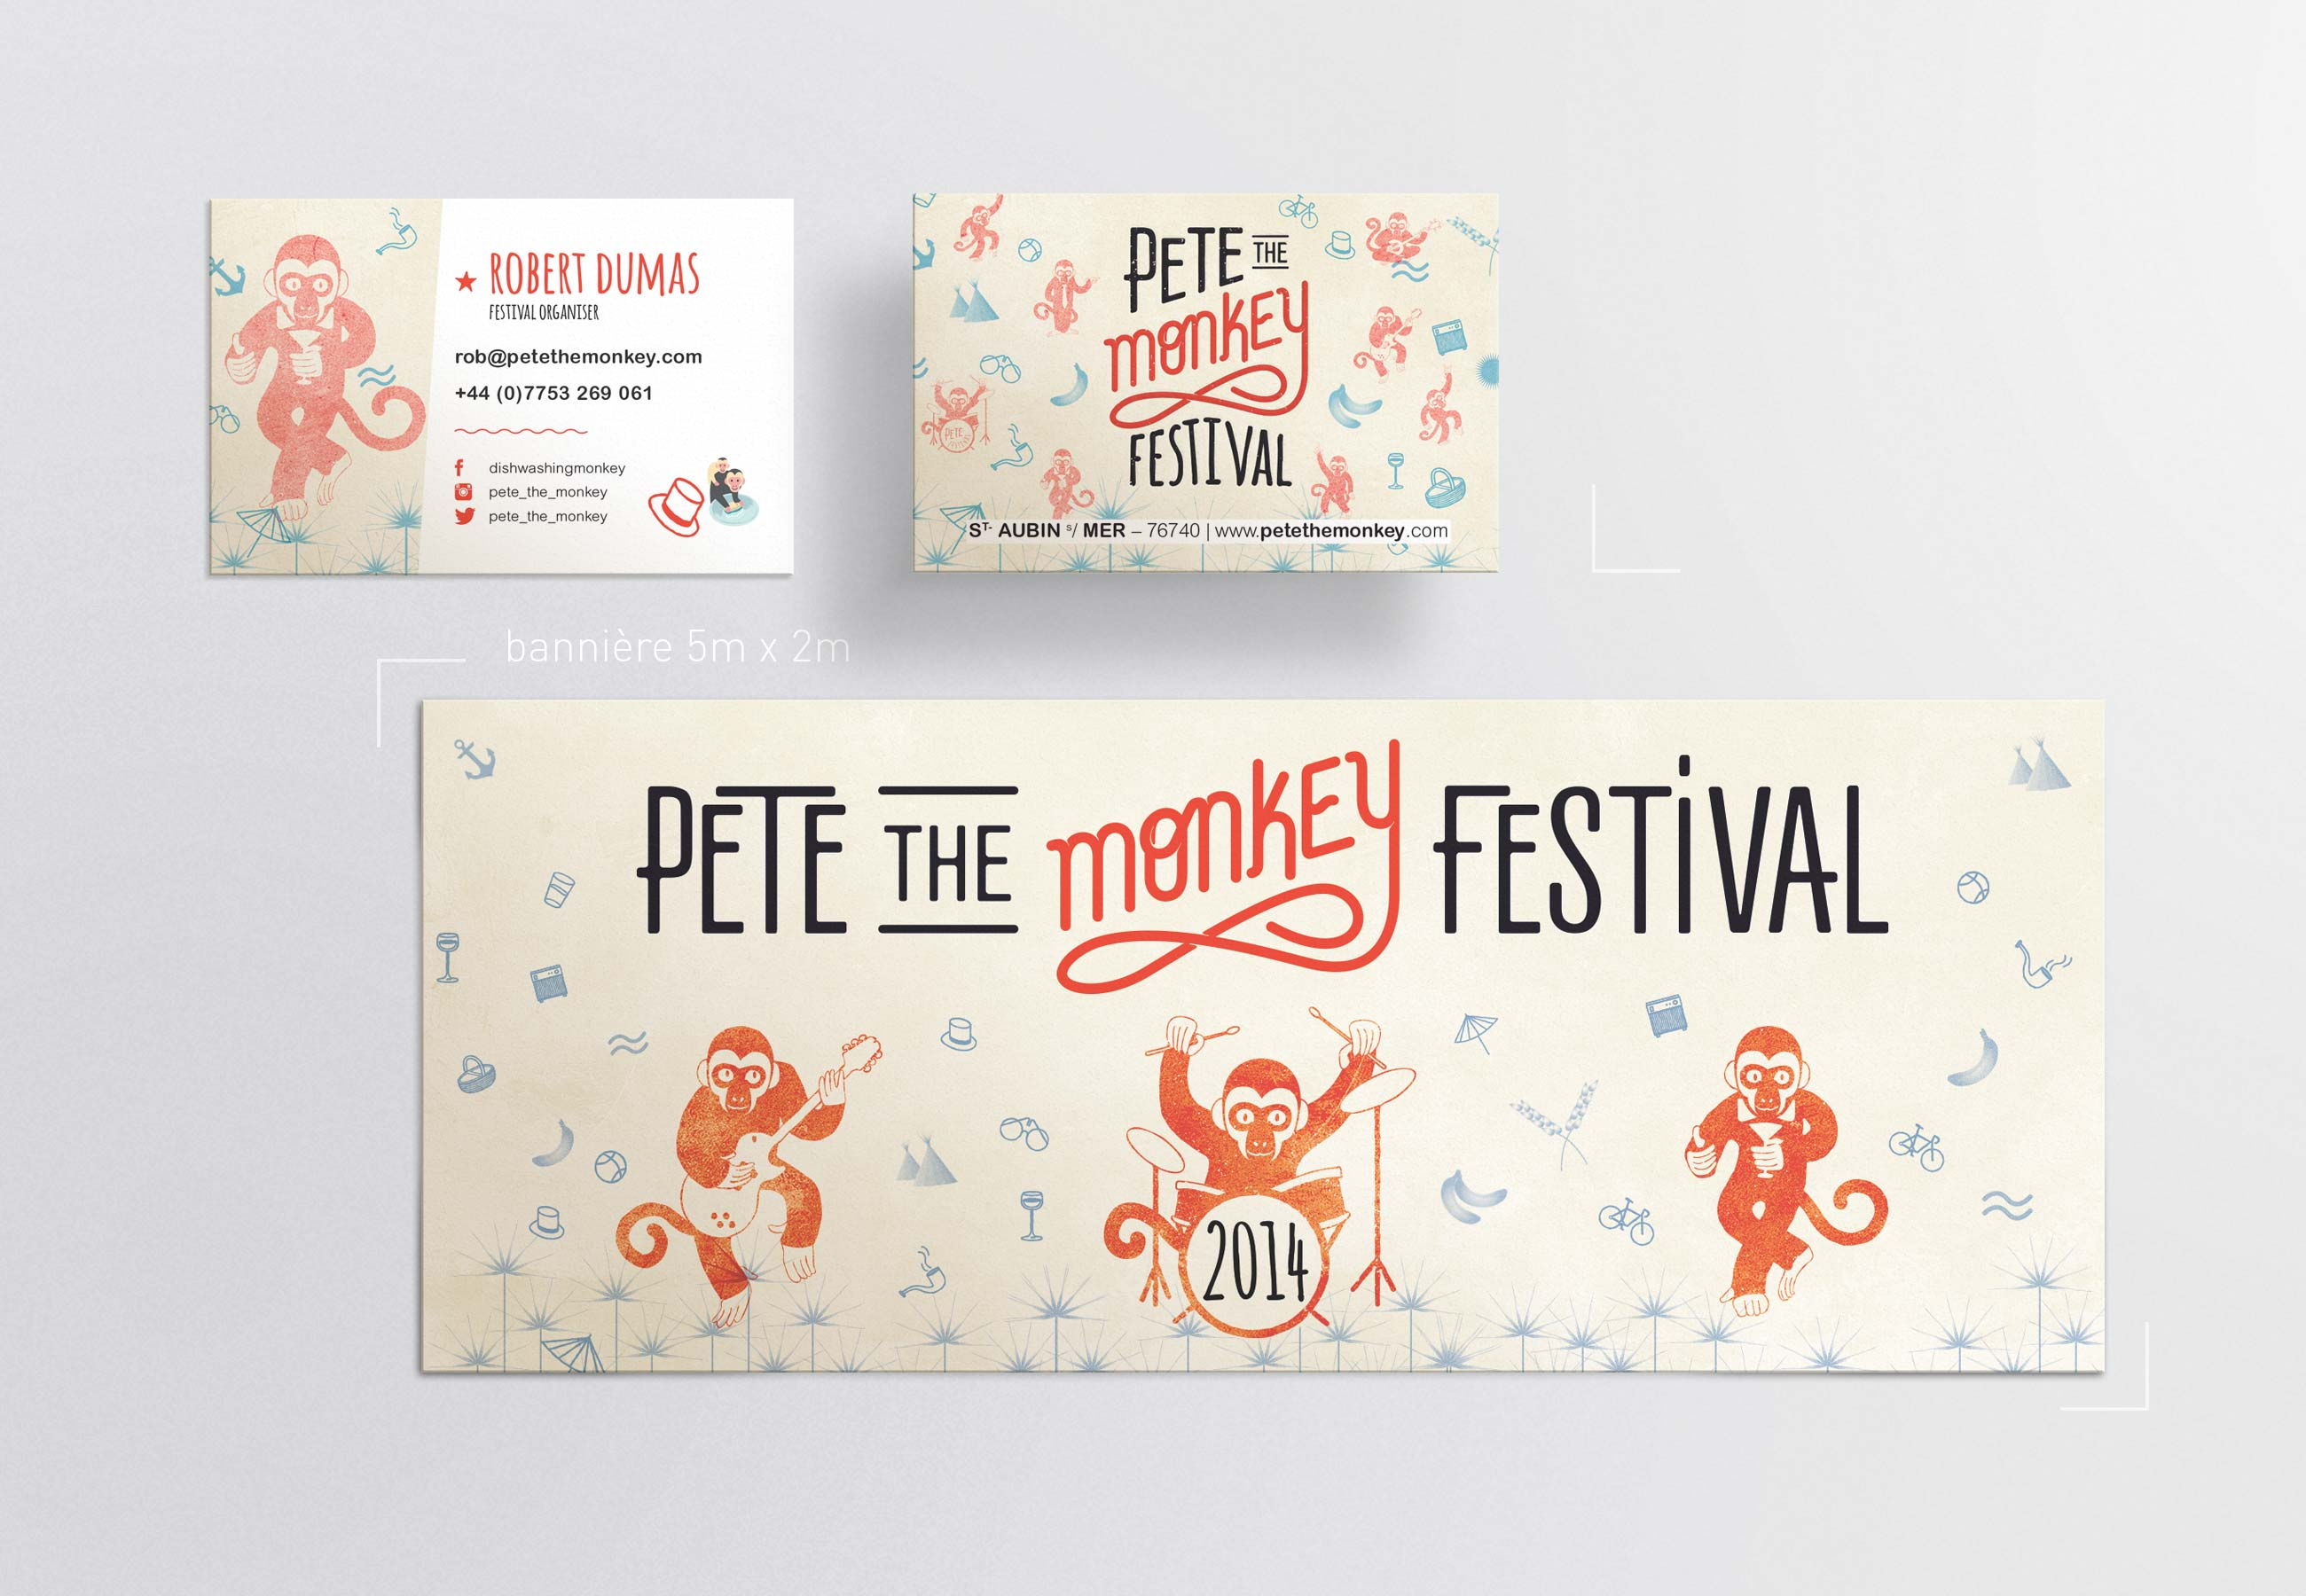 pete_the_monkey_02_parallele_graphique